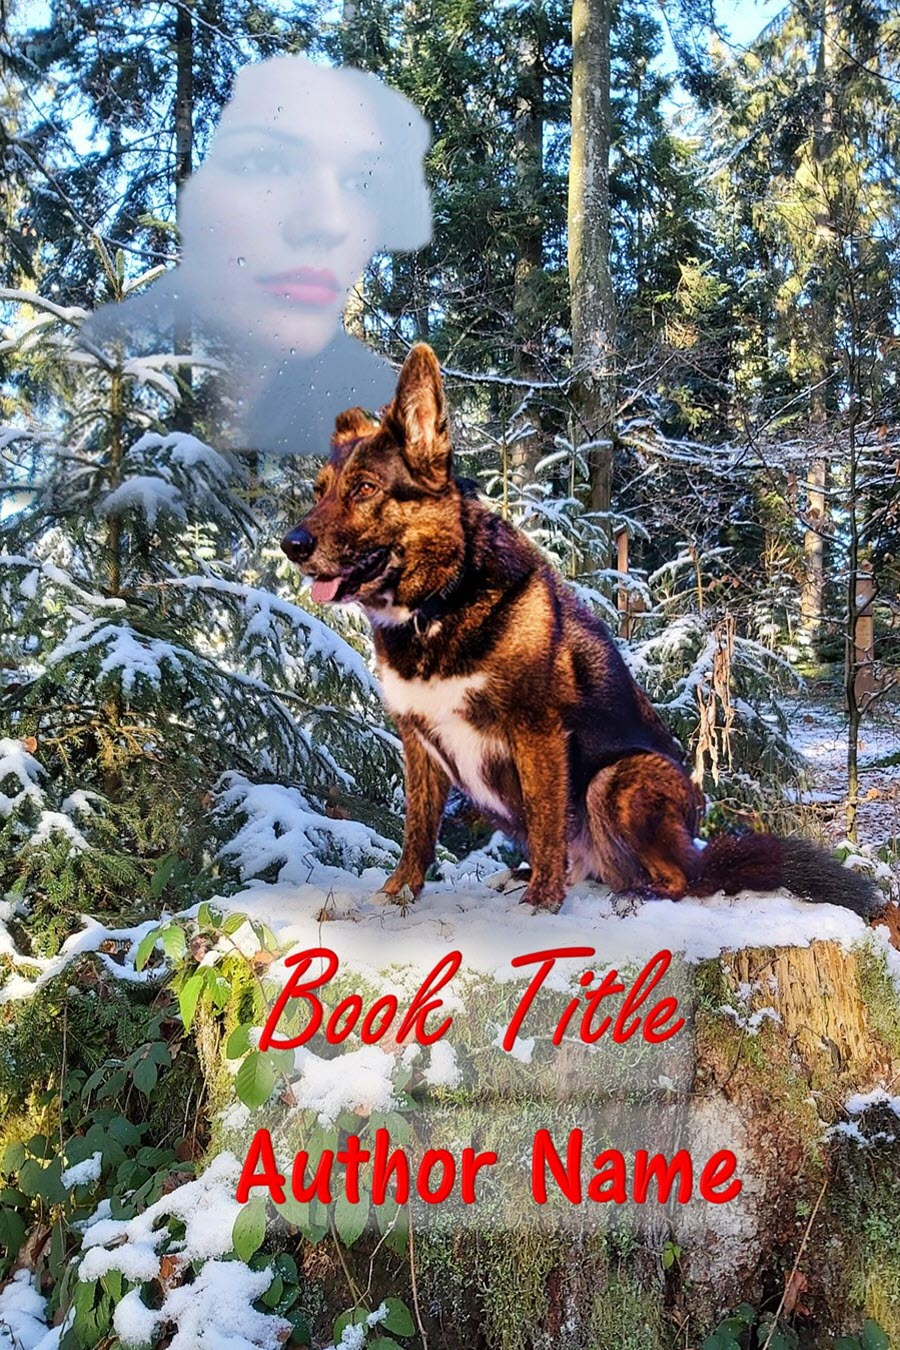 Group I. German Shepherd Dog, Forest, Snow, Mysterious Woman